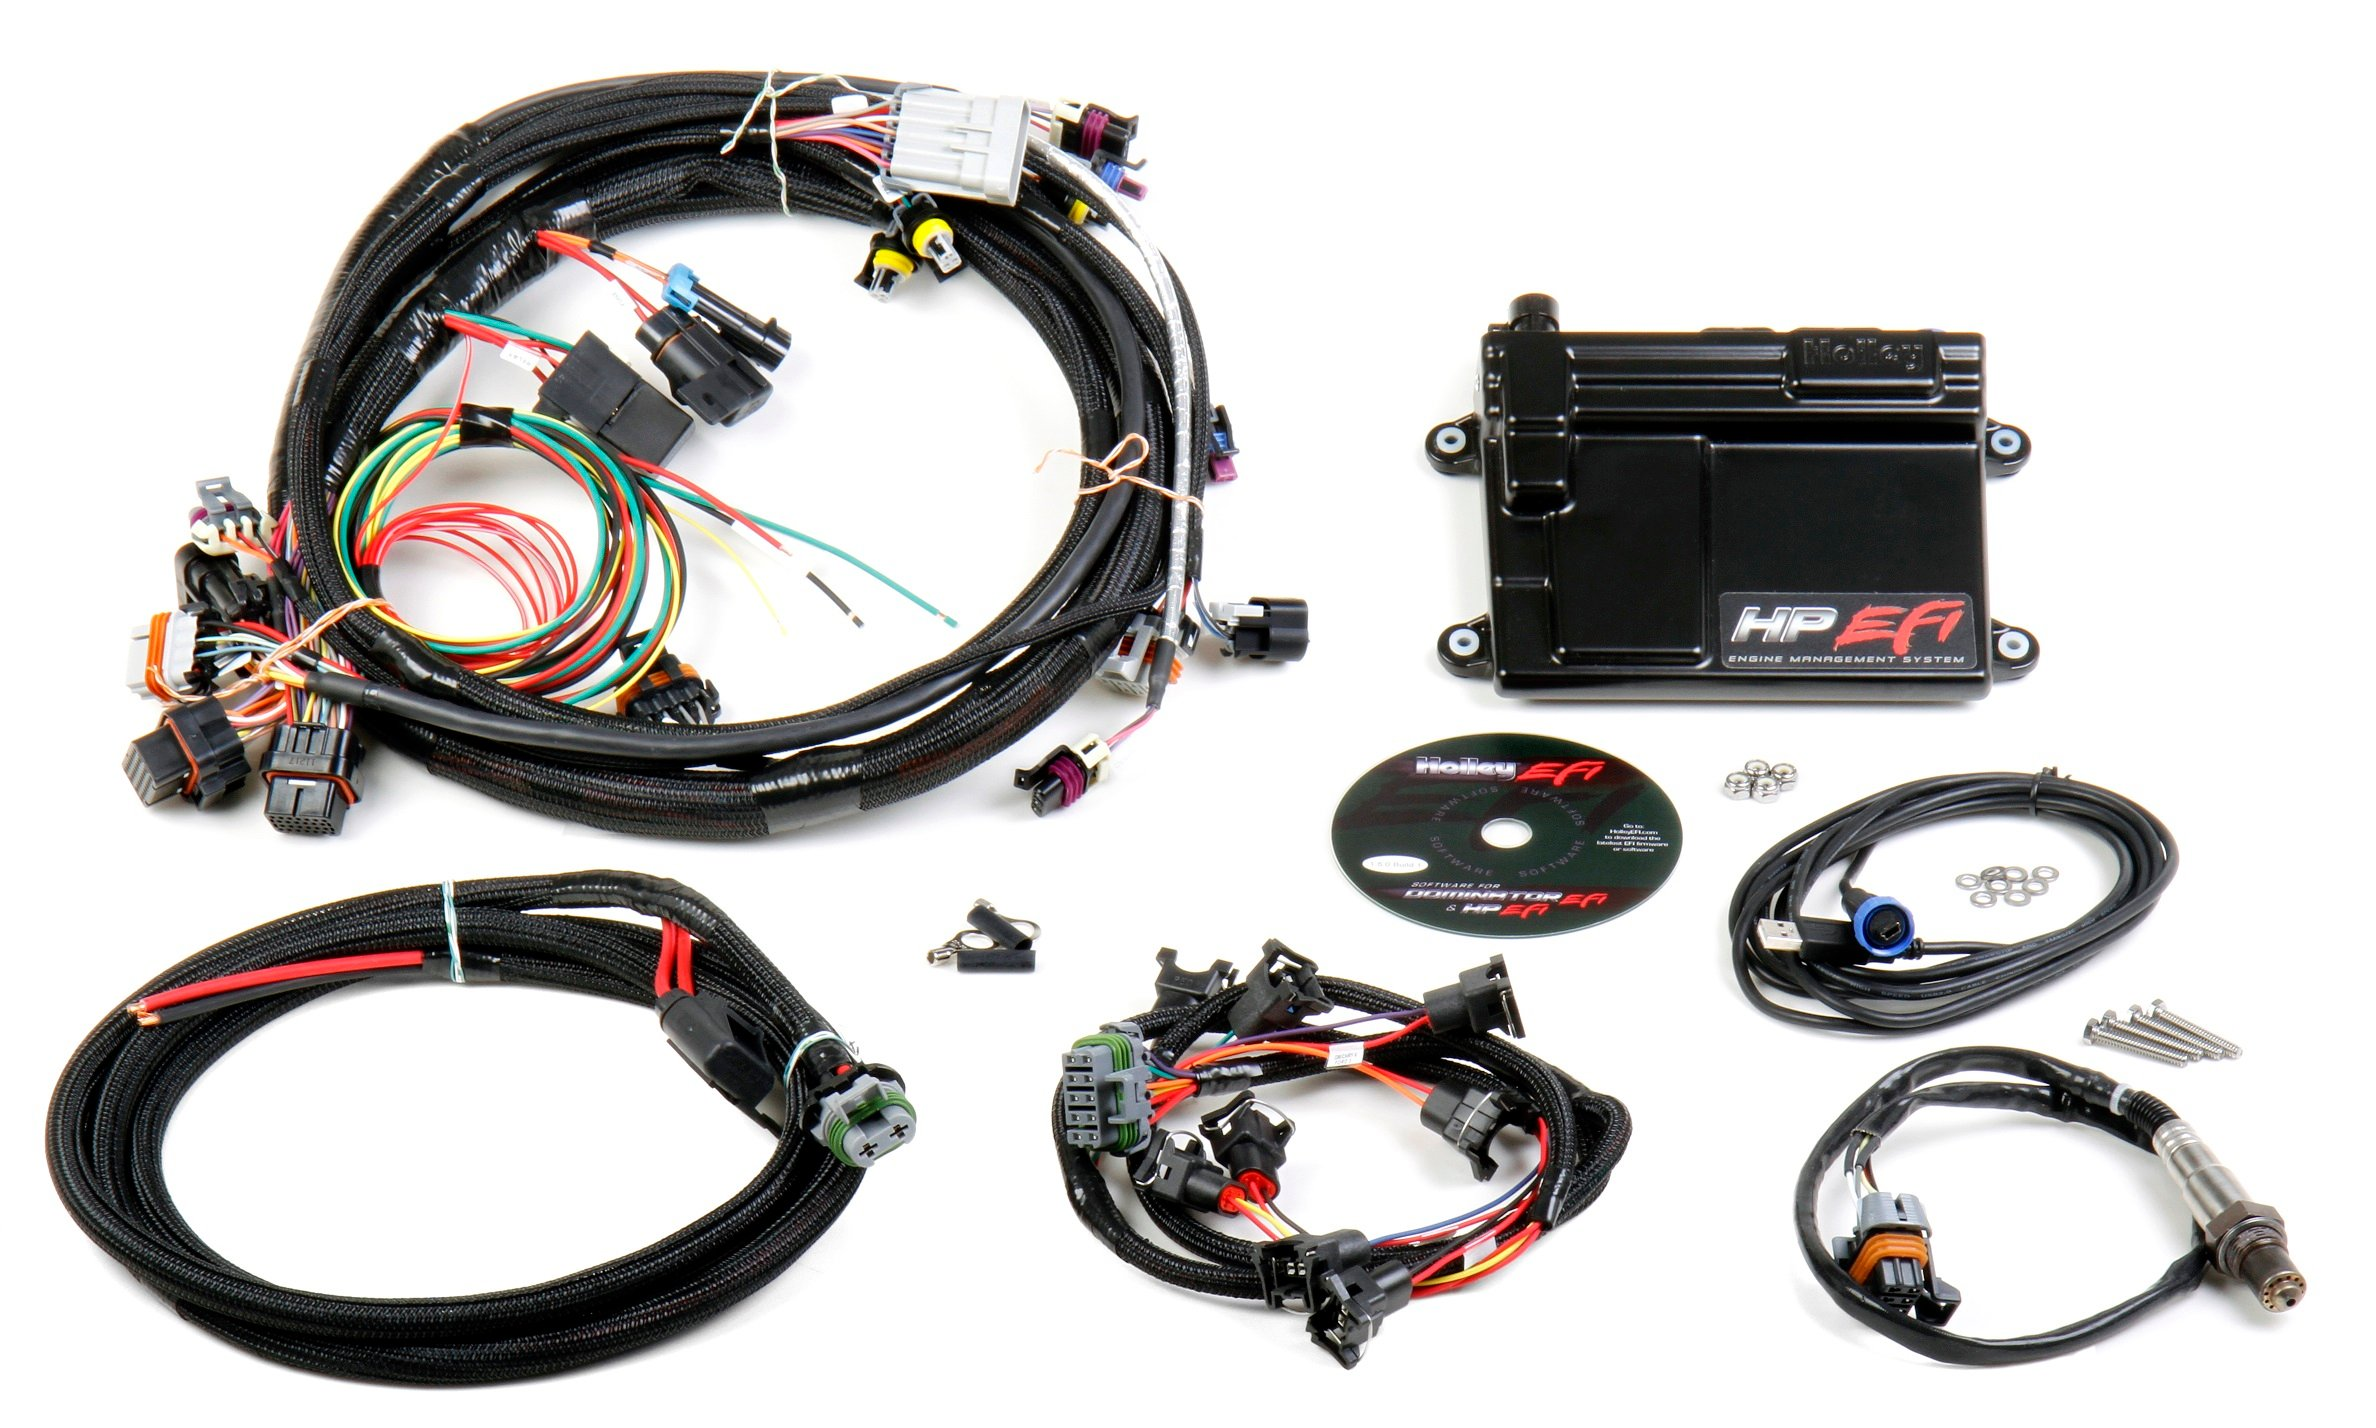 550 602 holley efi 550 602 hp efi ecu & harness kits ls3 wiring harness and computer at fashall.co